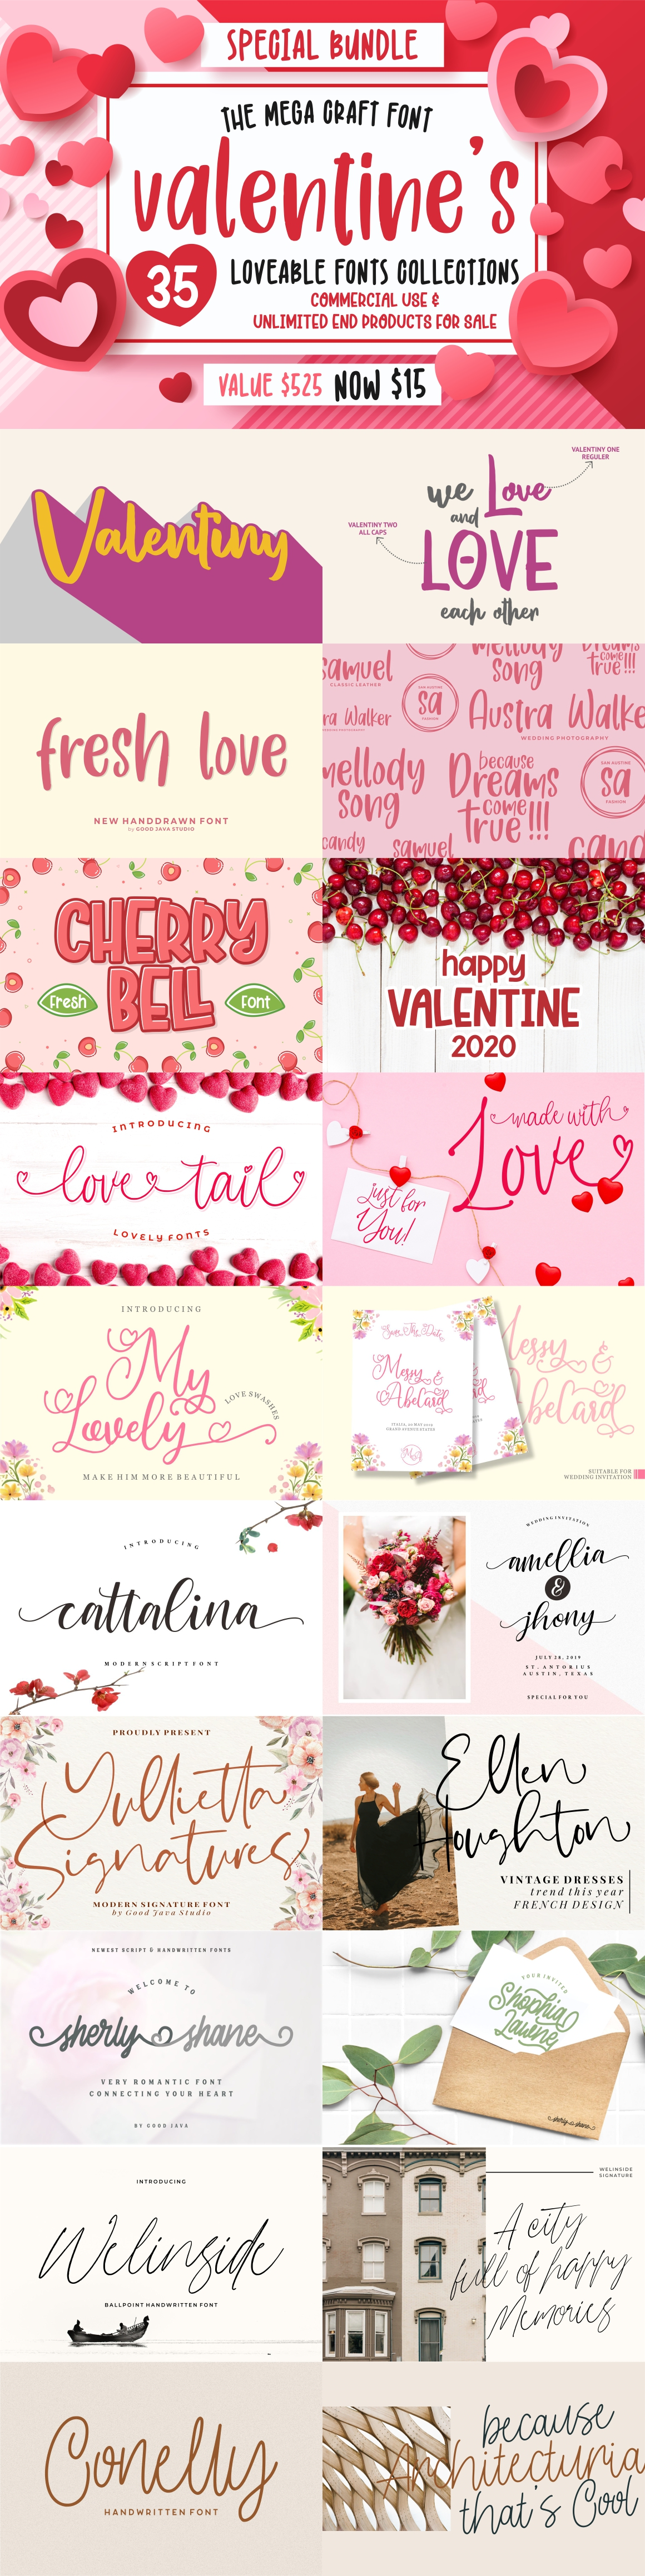 The Mega Valentine's Font Collections example image 2